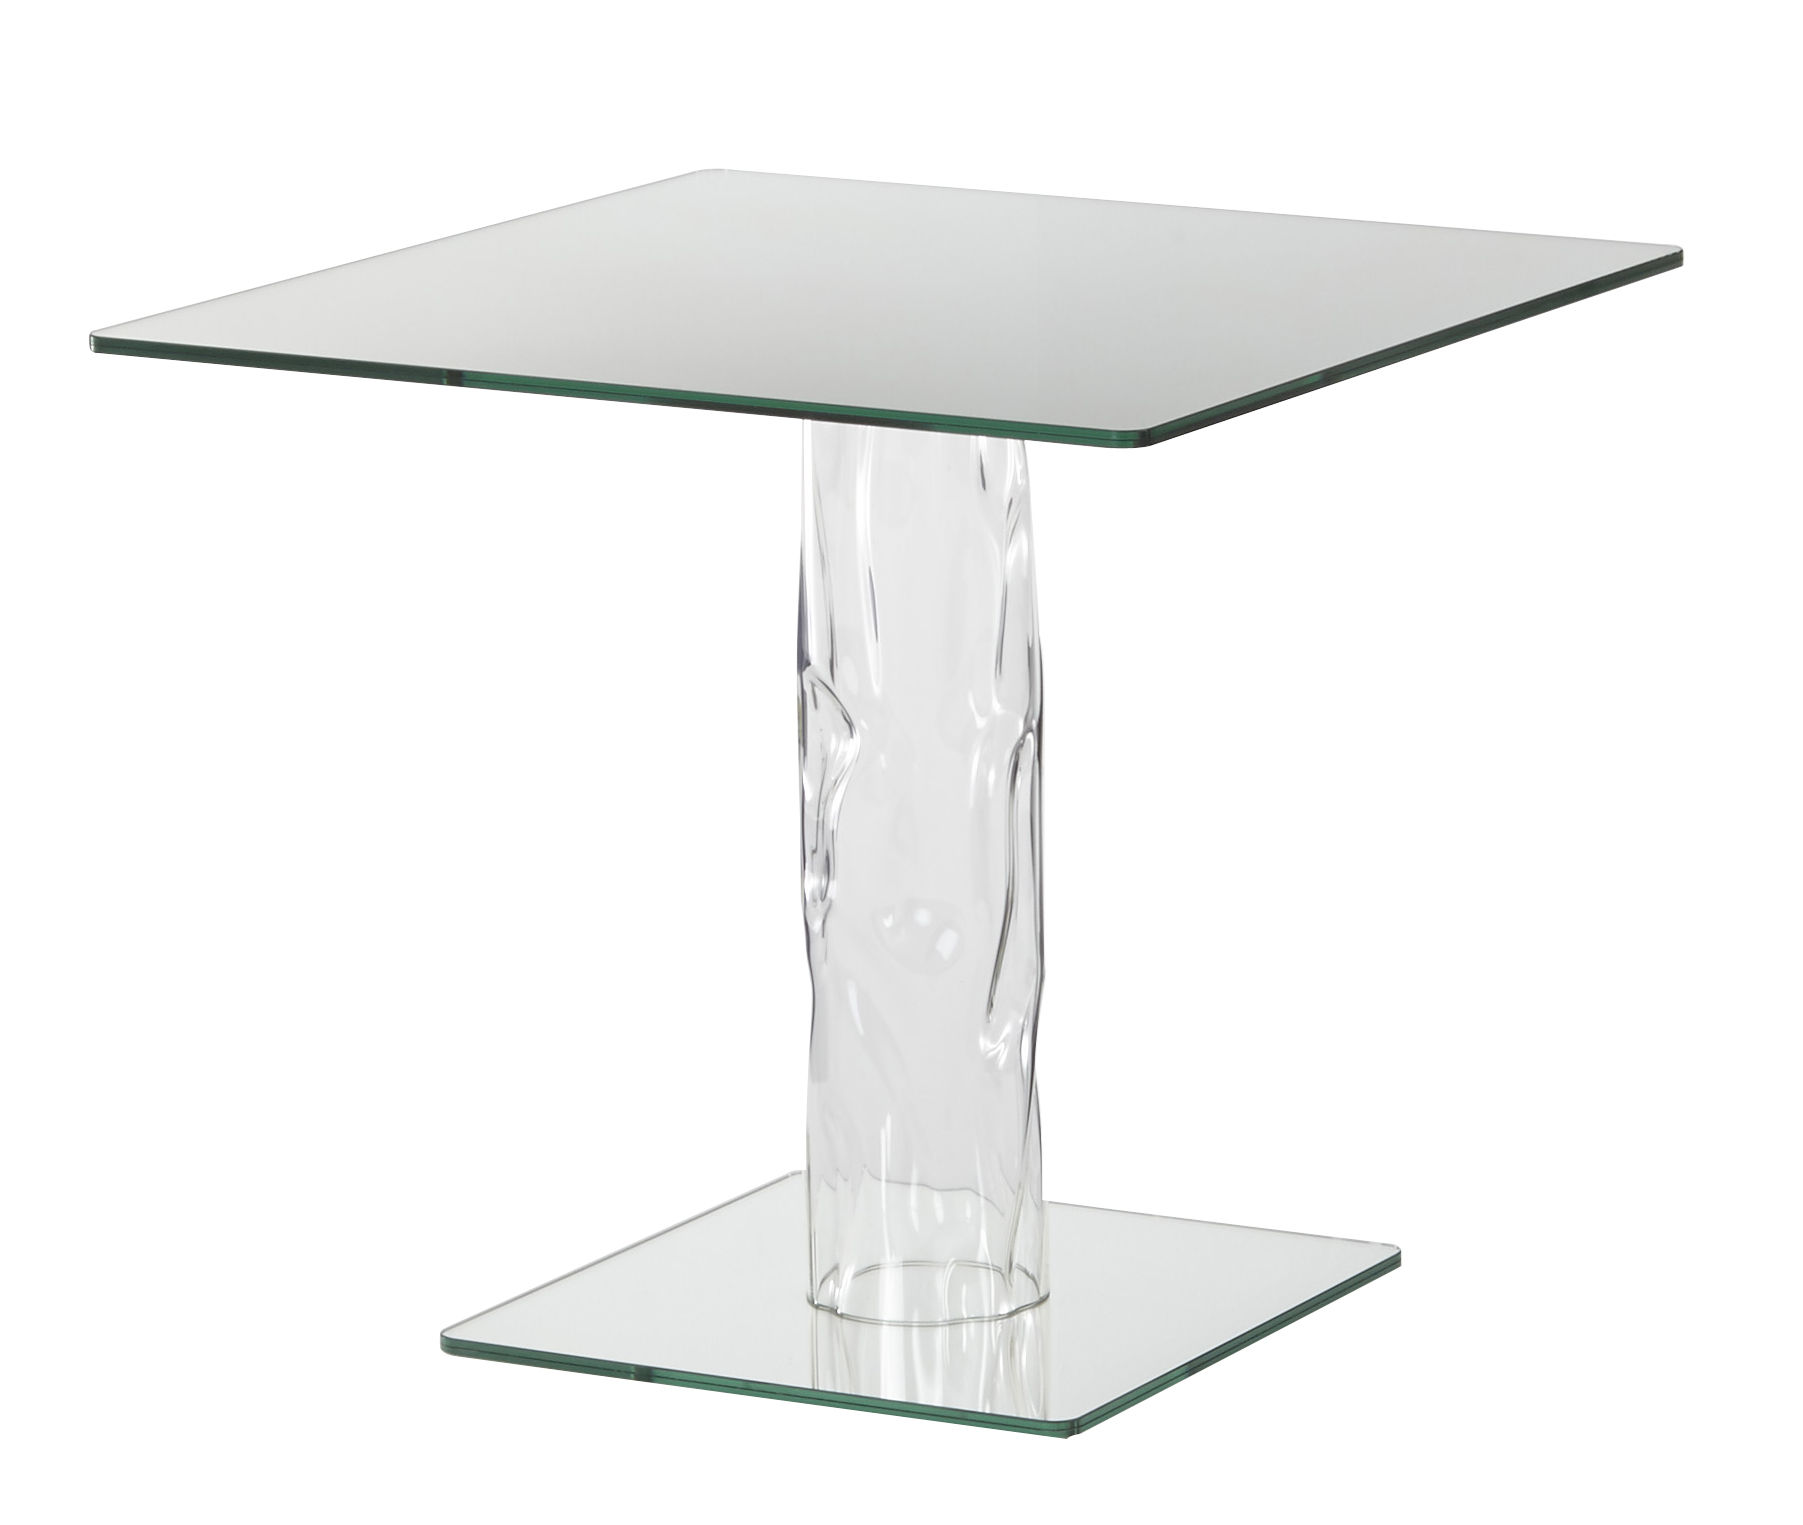 Furniture - Dining Tables - Narcissus Table - 80 x 80 cm - Mirror top and base by Glas Italia - Mirror / Transparent leg - Borosilicated glass, Mirror